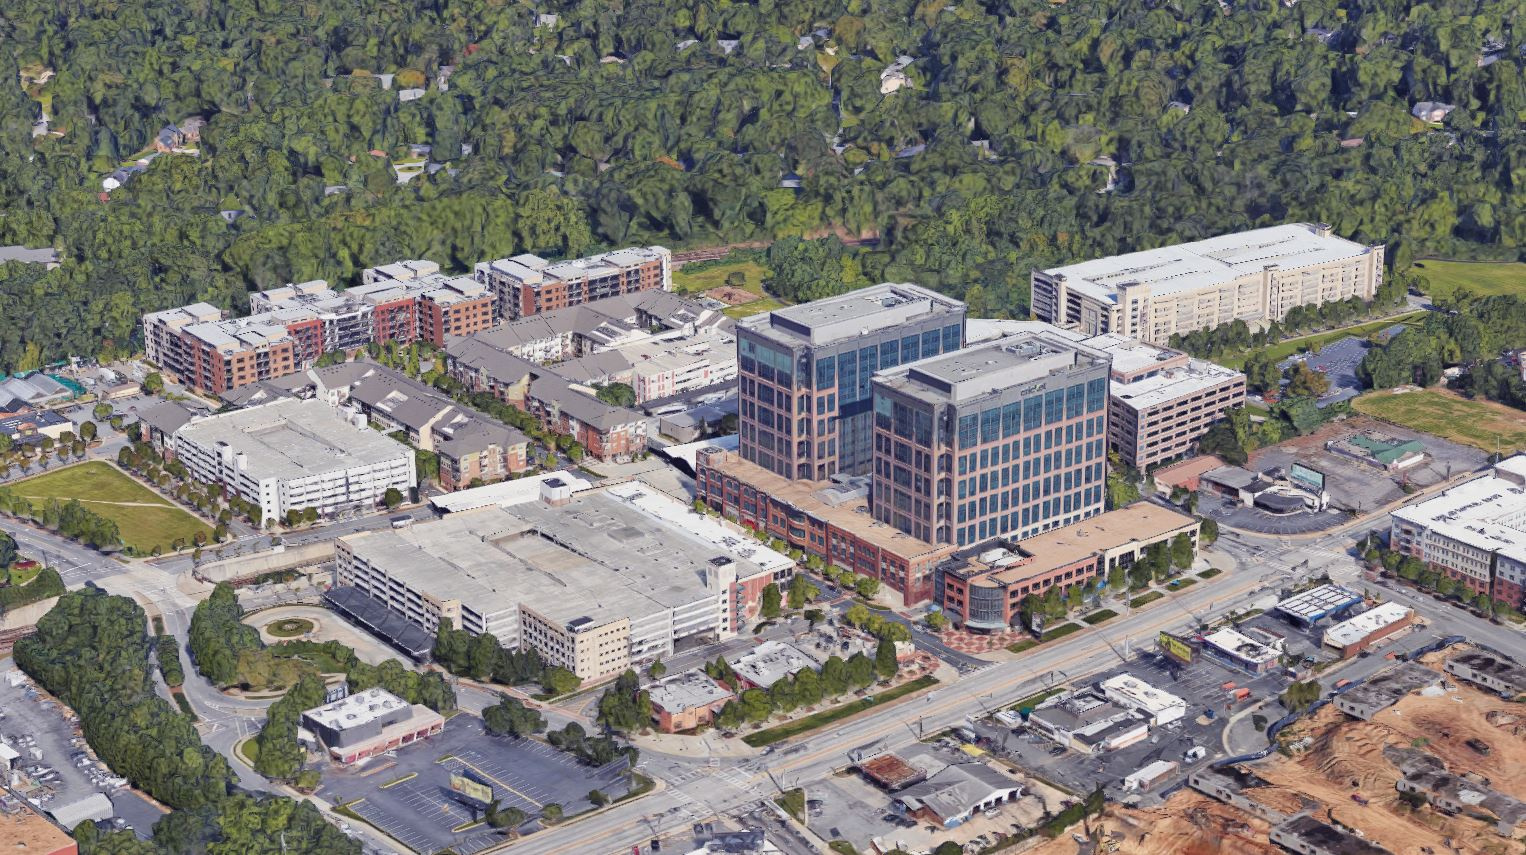 An aerial view of the current development around Lindbergh Center.